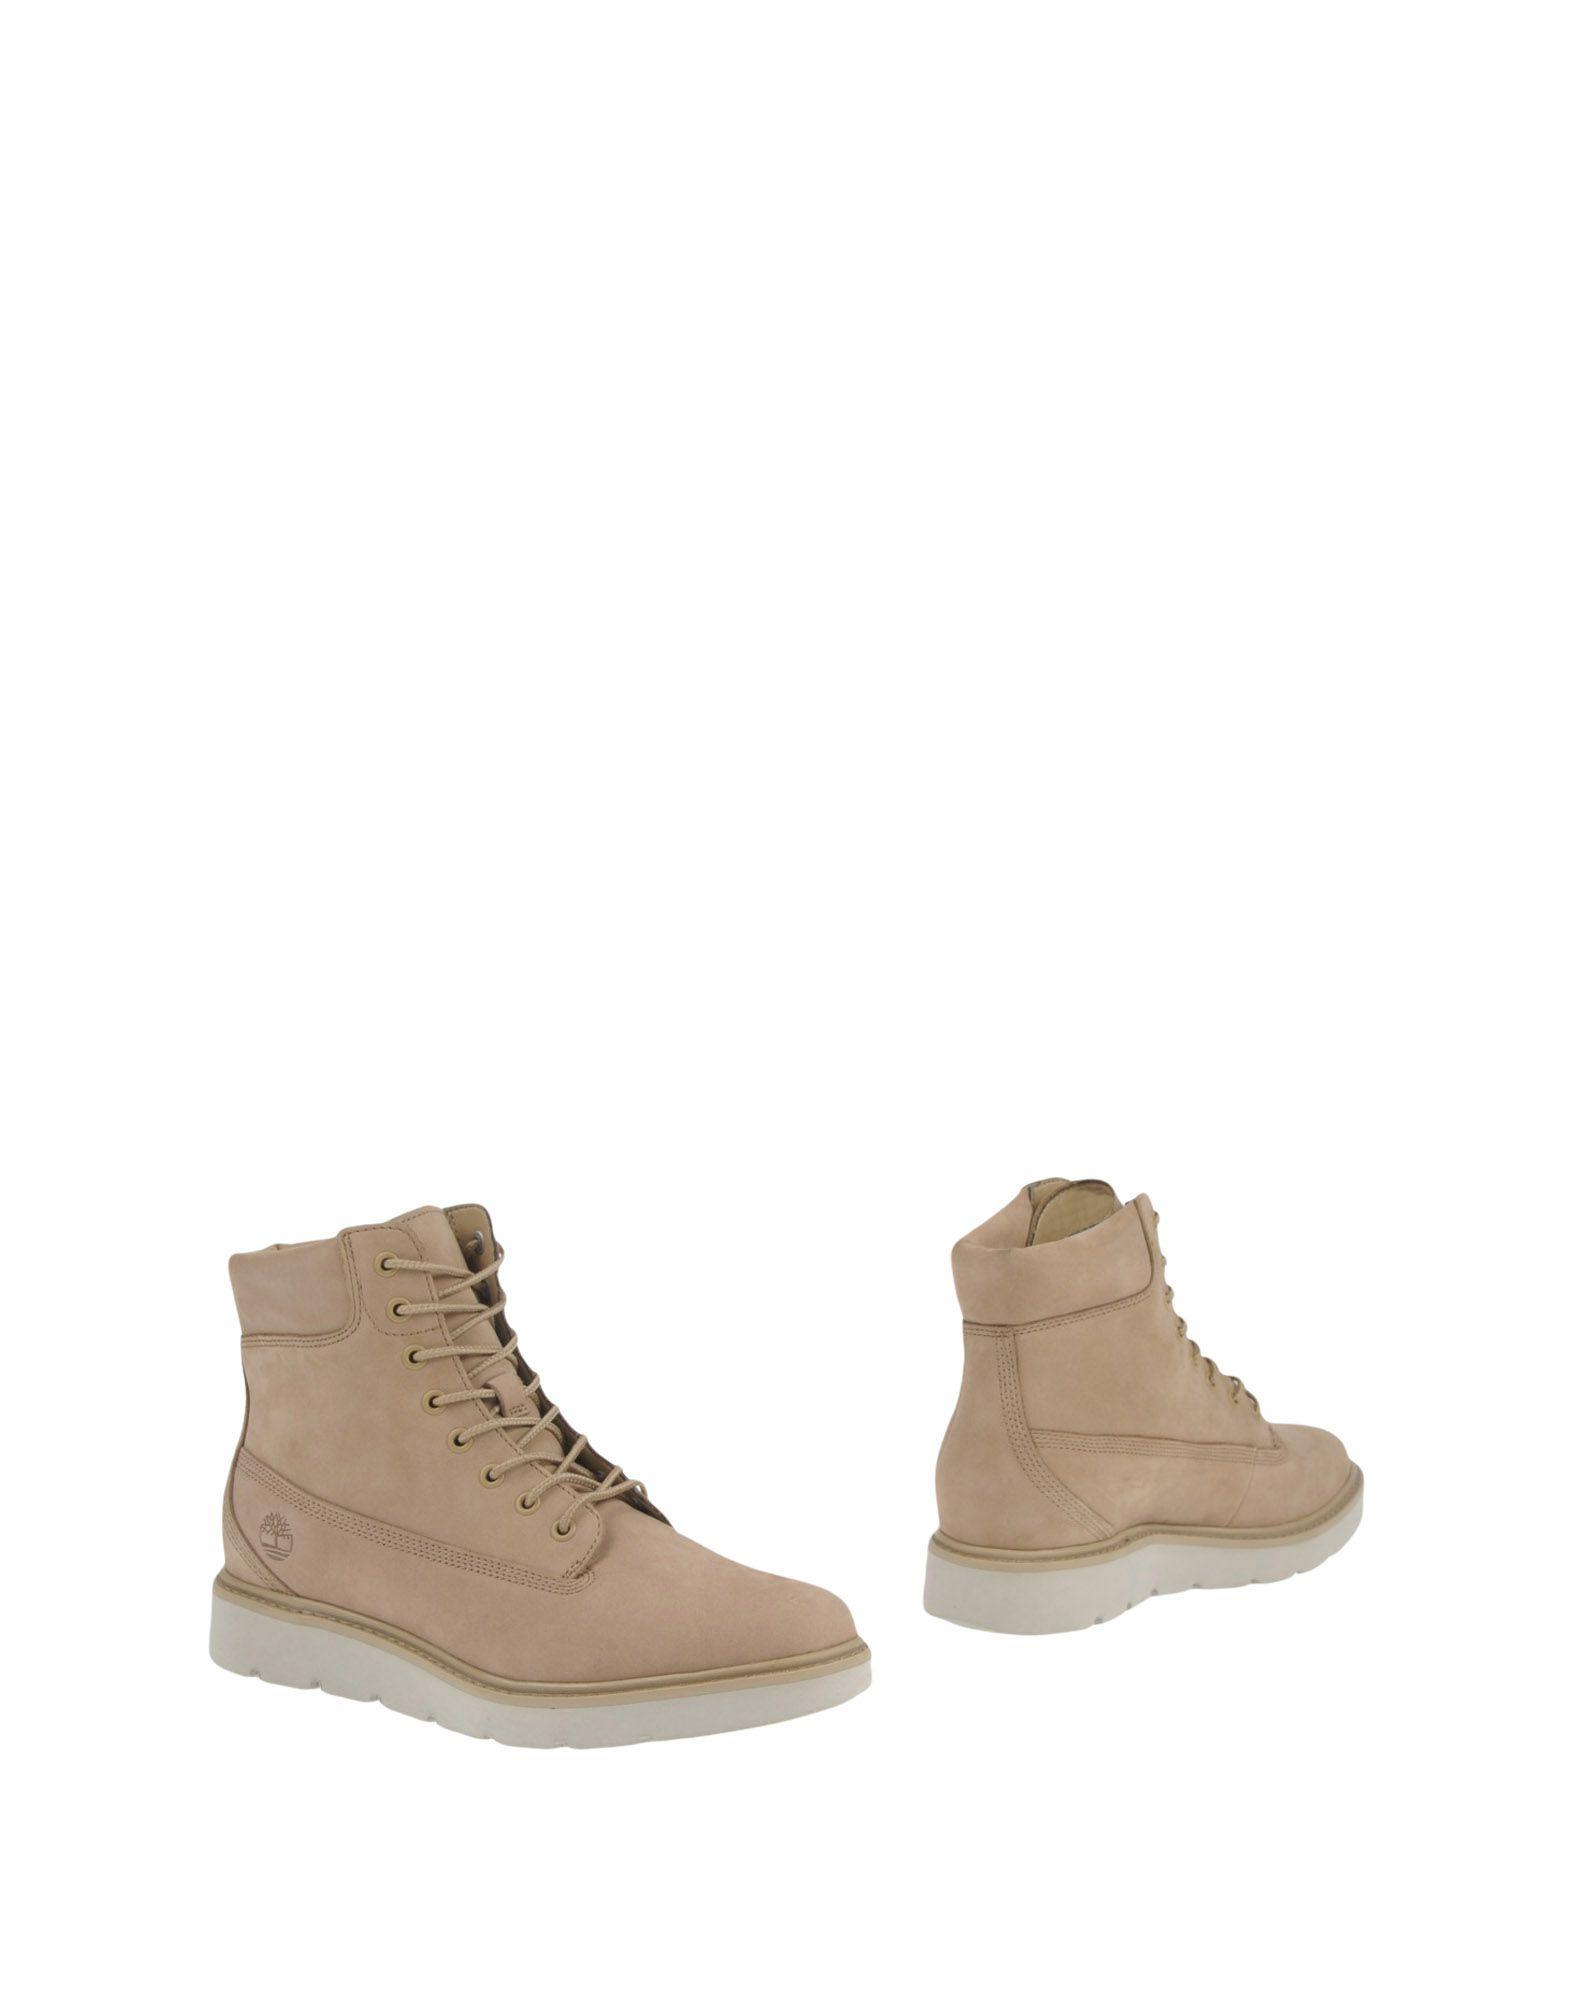 Timberland Ankle Boot In Beige